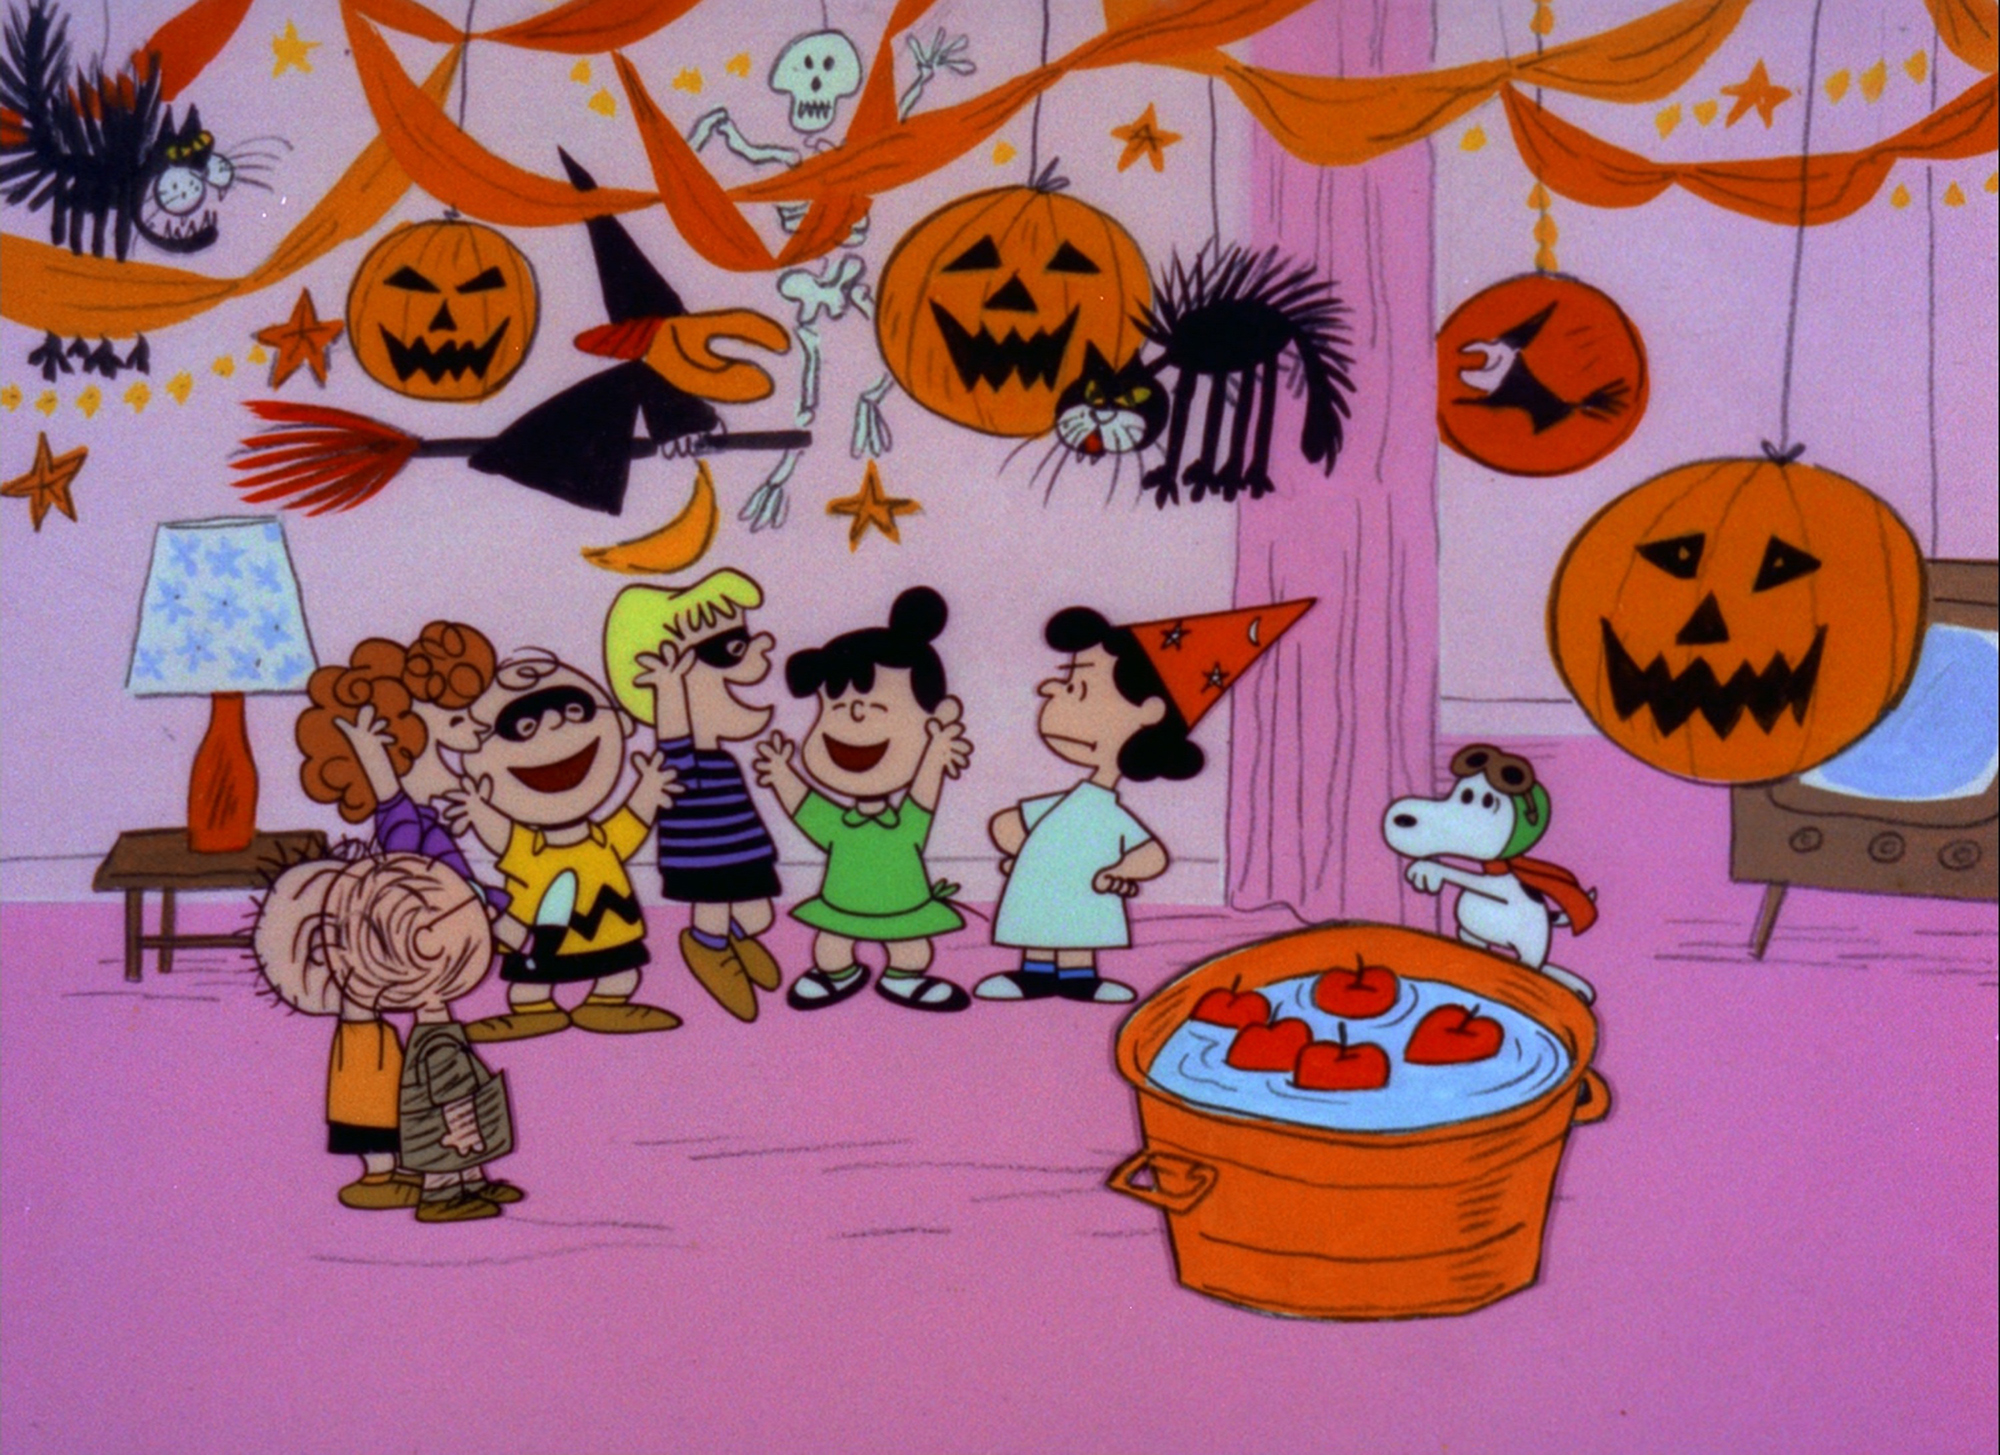 After 54 years on broadcast TV, 'It's the Great Pumpkin, Charlie Brown' moves to Apple TV+